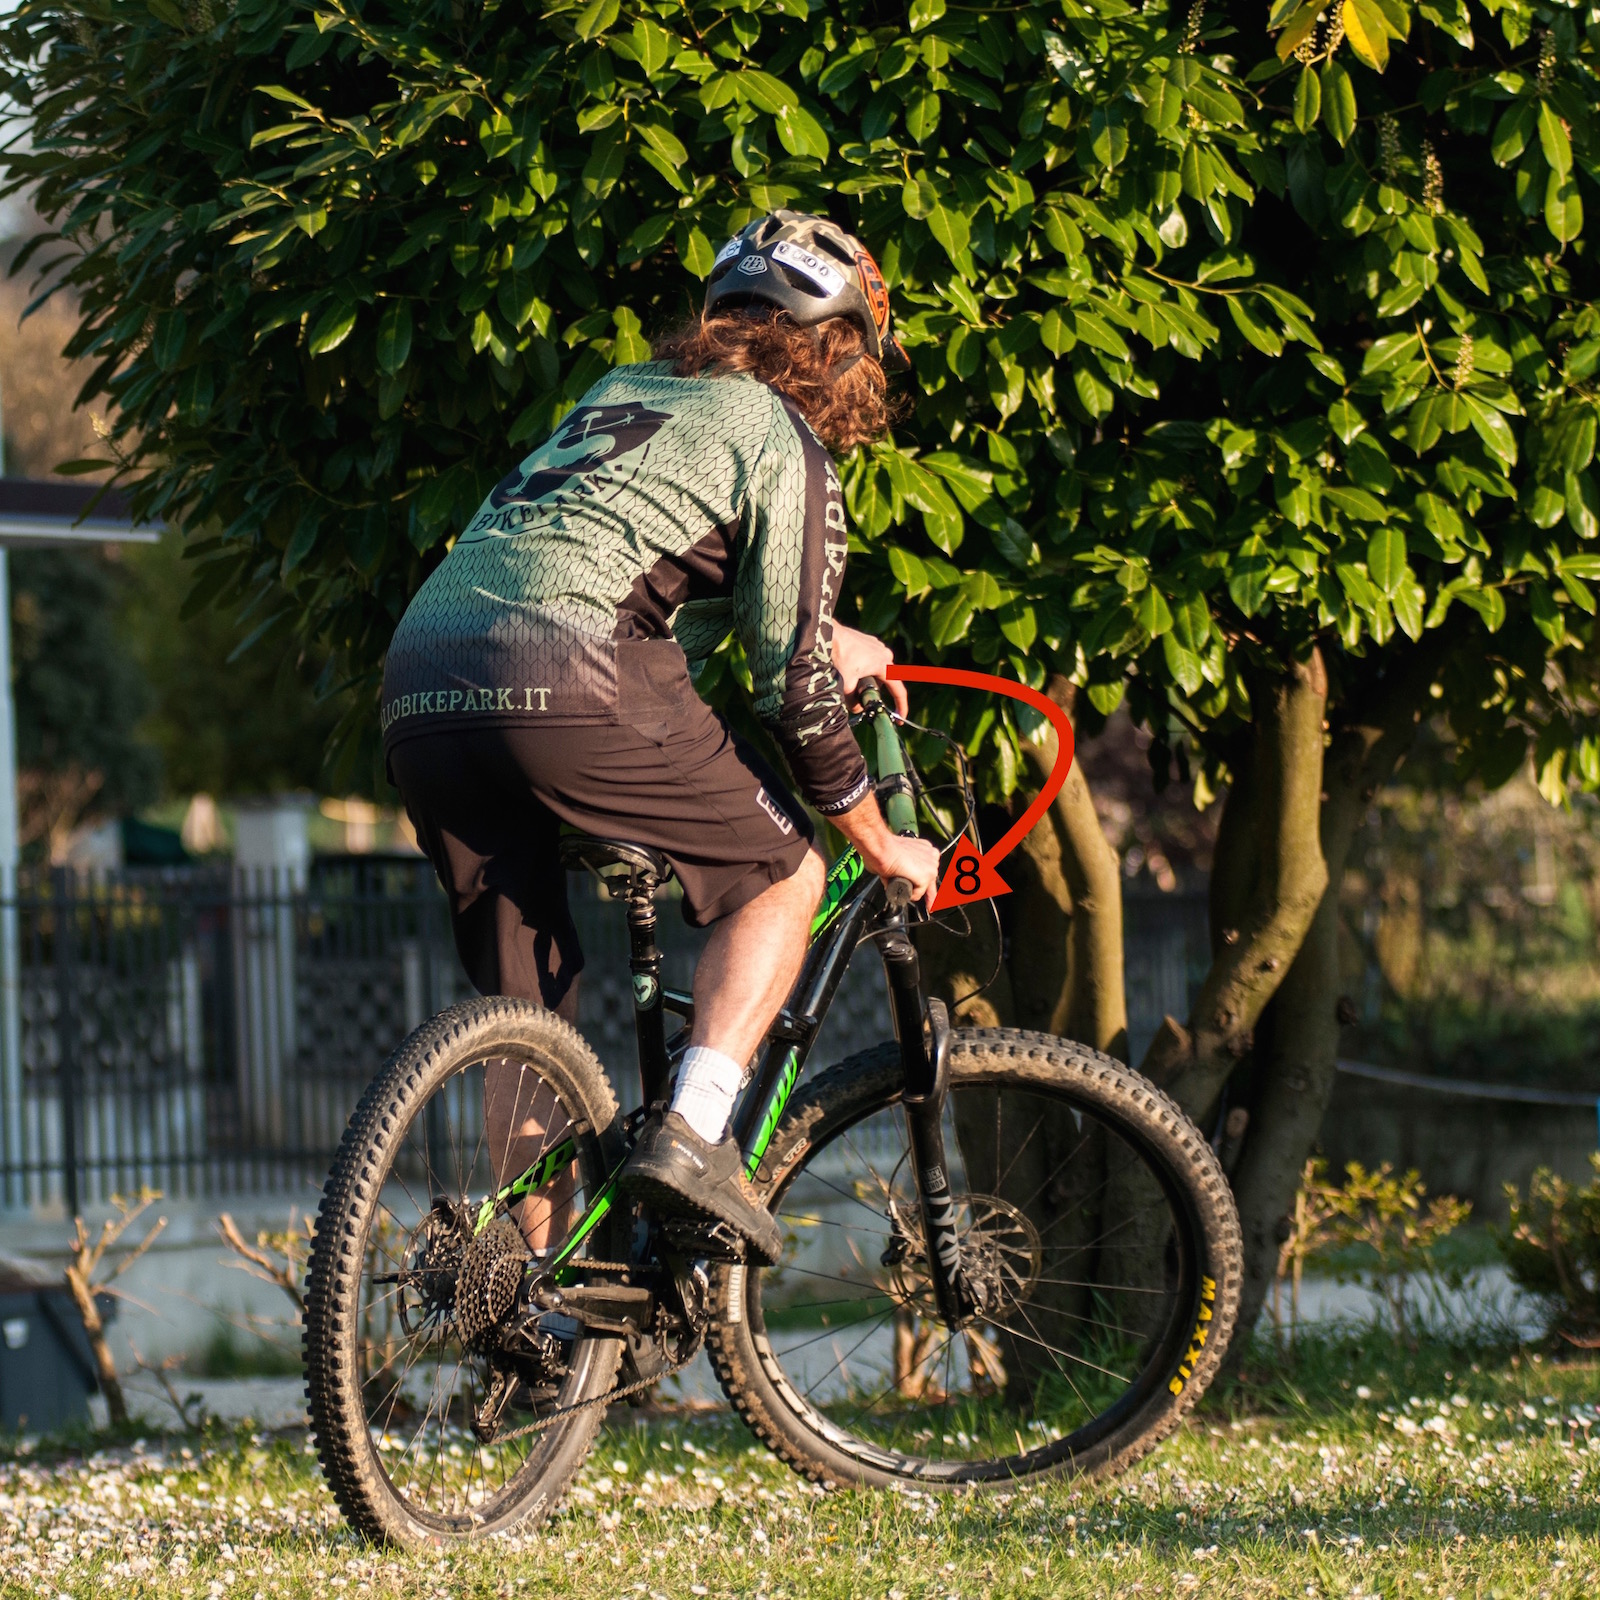 tutorial mountainbike fakie fase 4